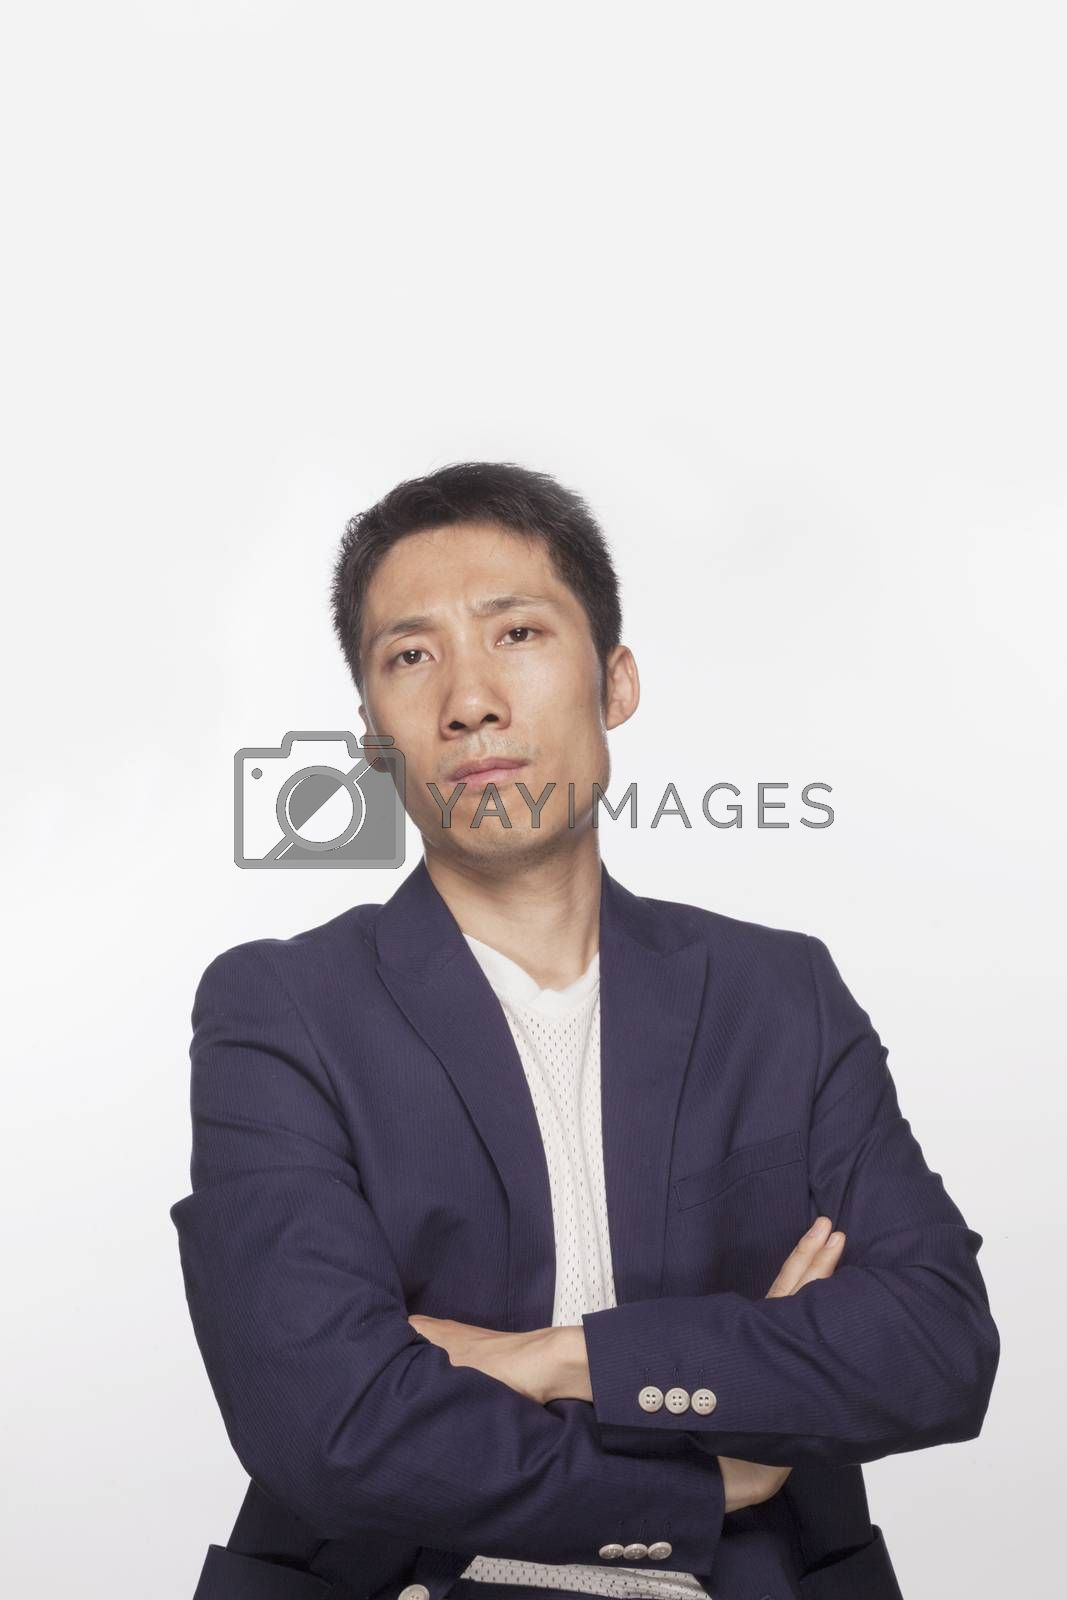 Portrait of serious man with arms crossed looking at camera, studio shot